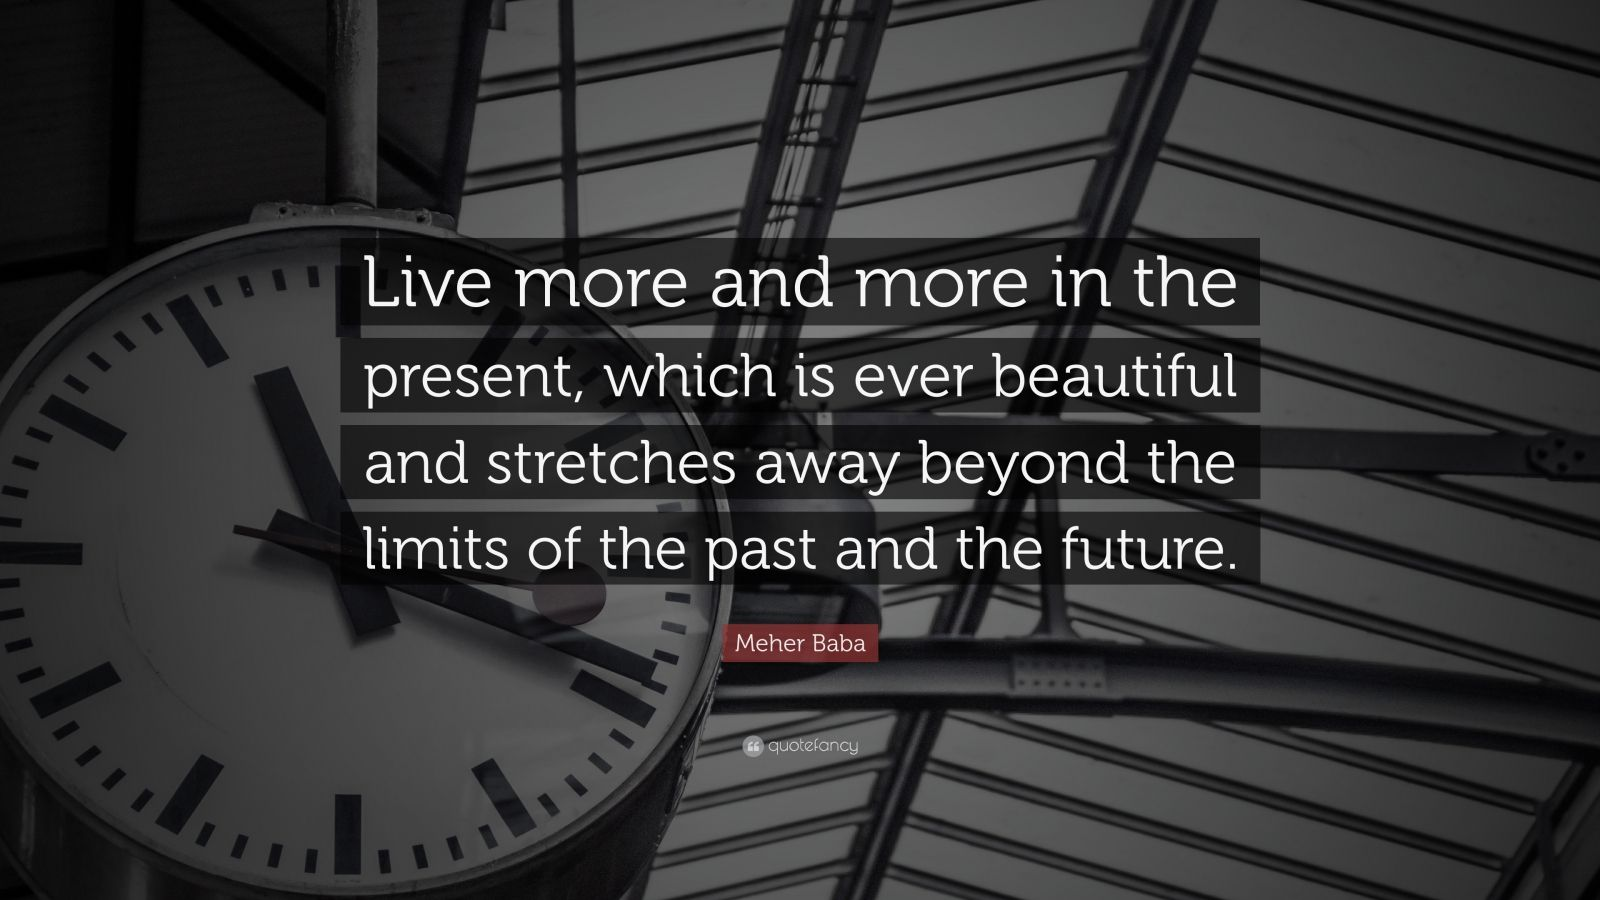 """Meher Baba Quote: """"Live more and more in the present, which is ever beautiful and stretches away beyond the limits of the past and the future."""""""